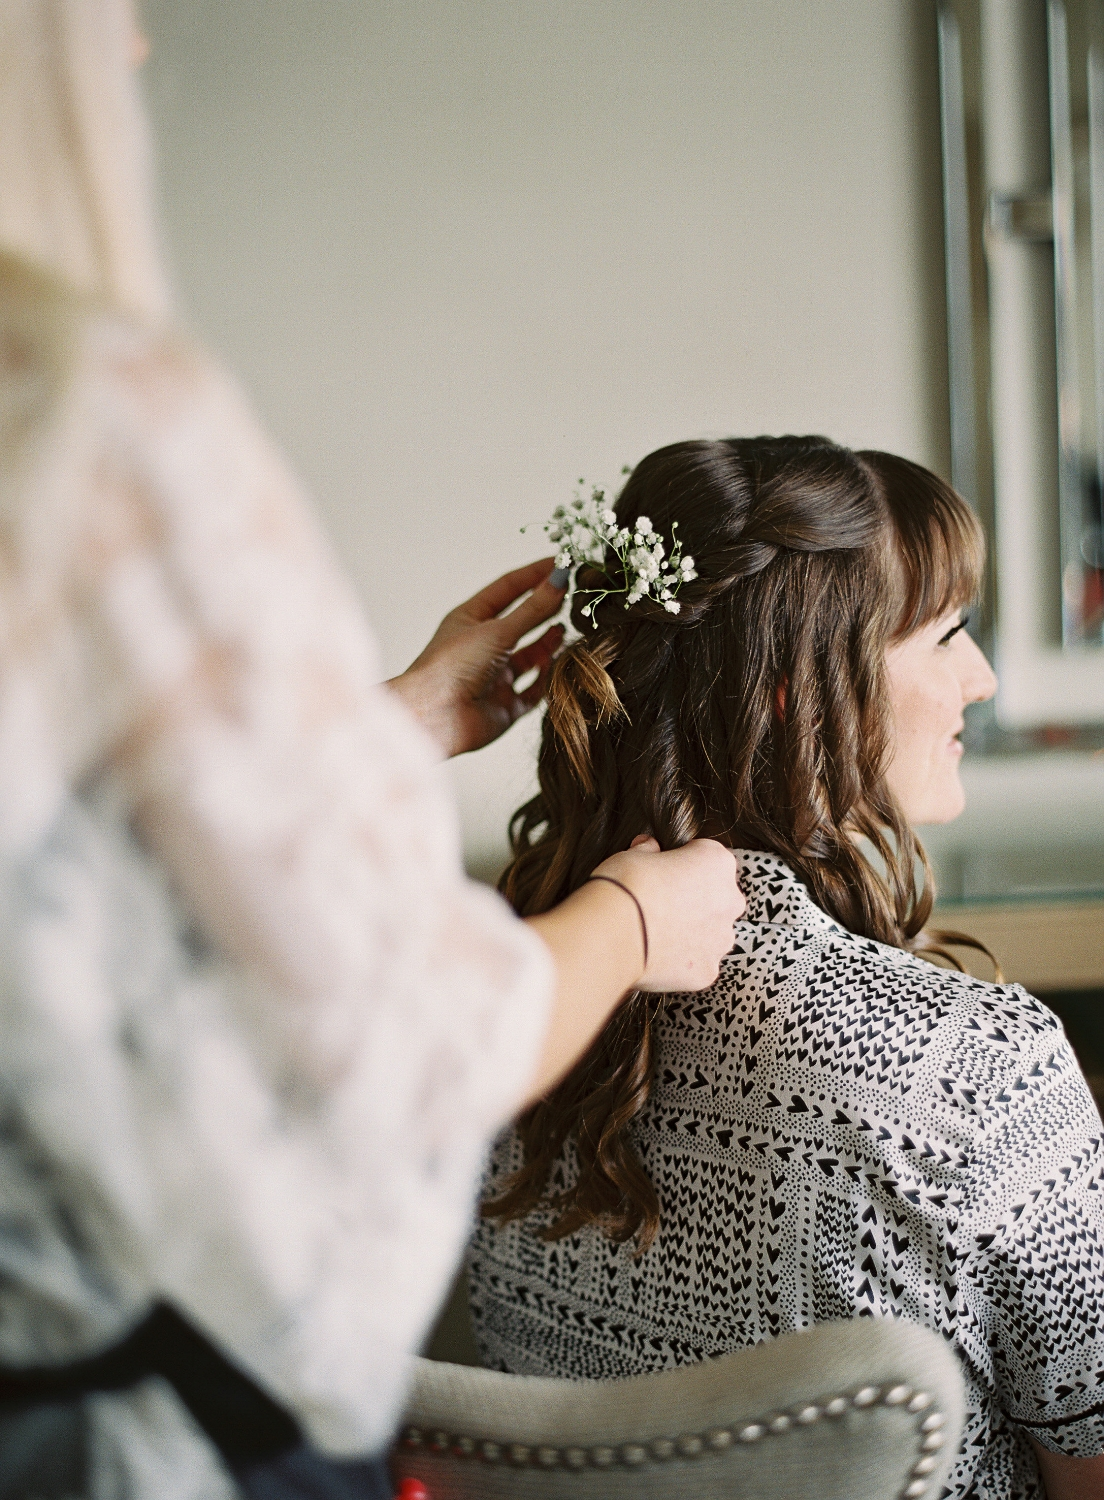 Brunette Bride with Curled Hairstyle Down, bangs and flowers in hair. Wedding makeup and hair by Vanity Belle in Orange County (Costa Mesa) and San Diego (La Jolla)